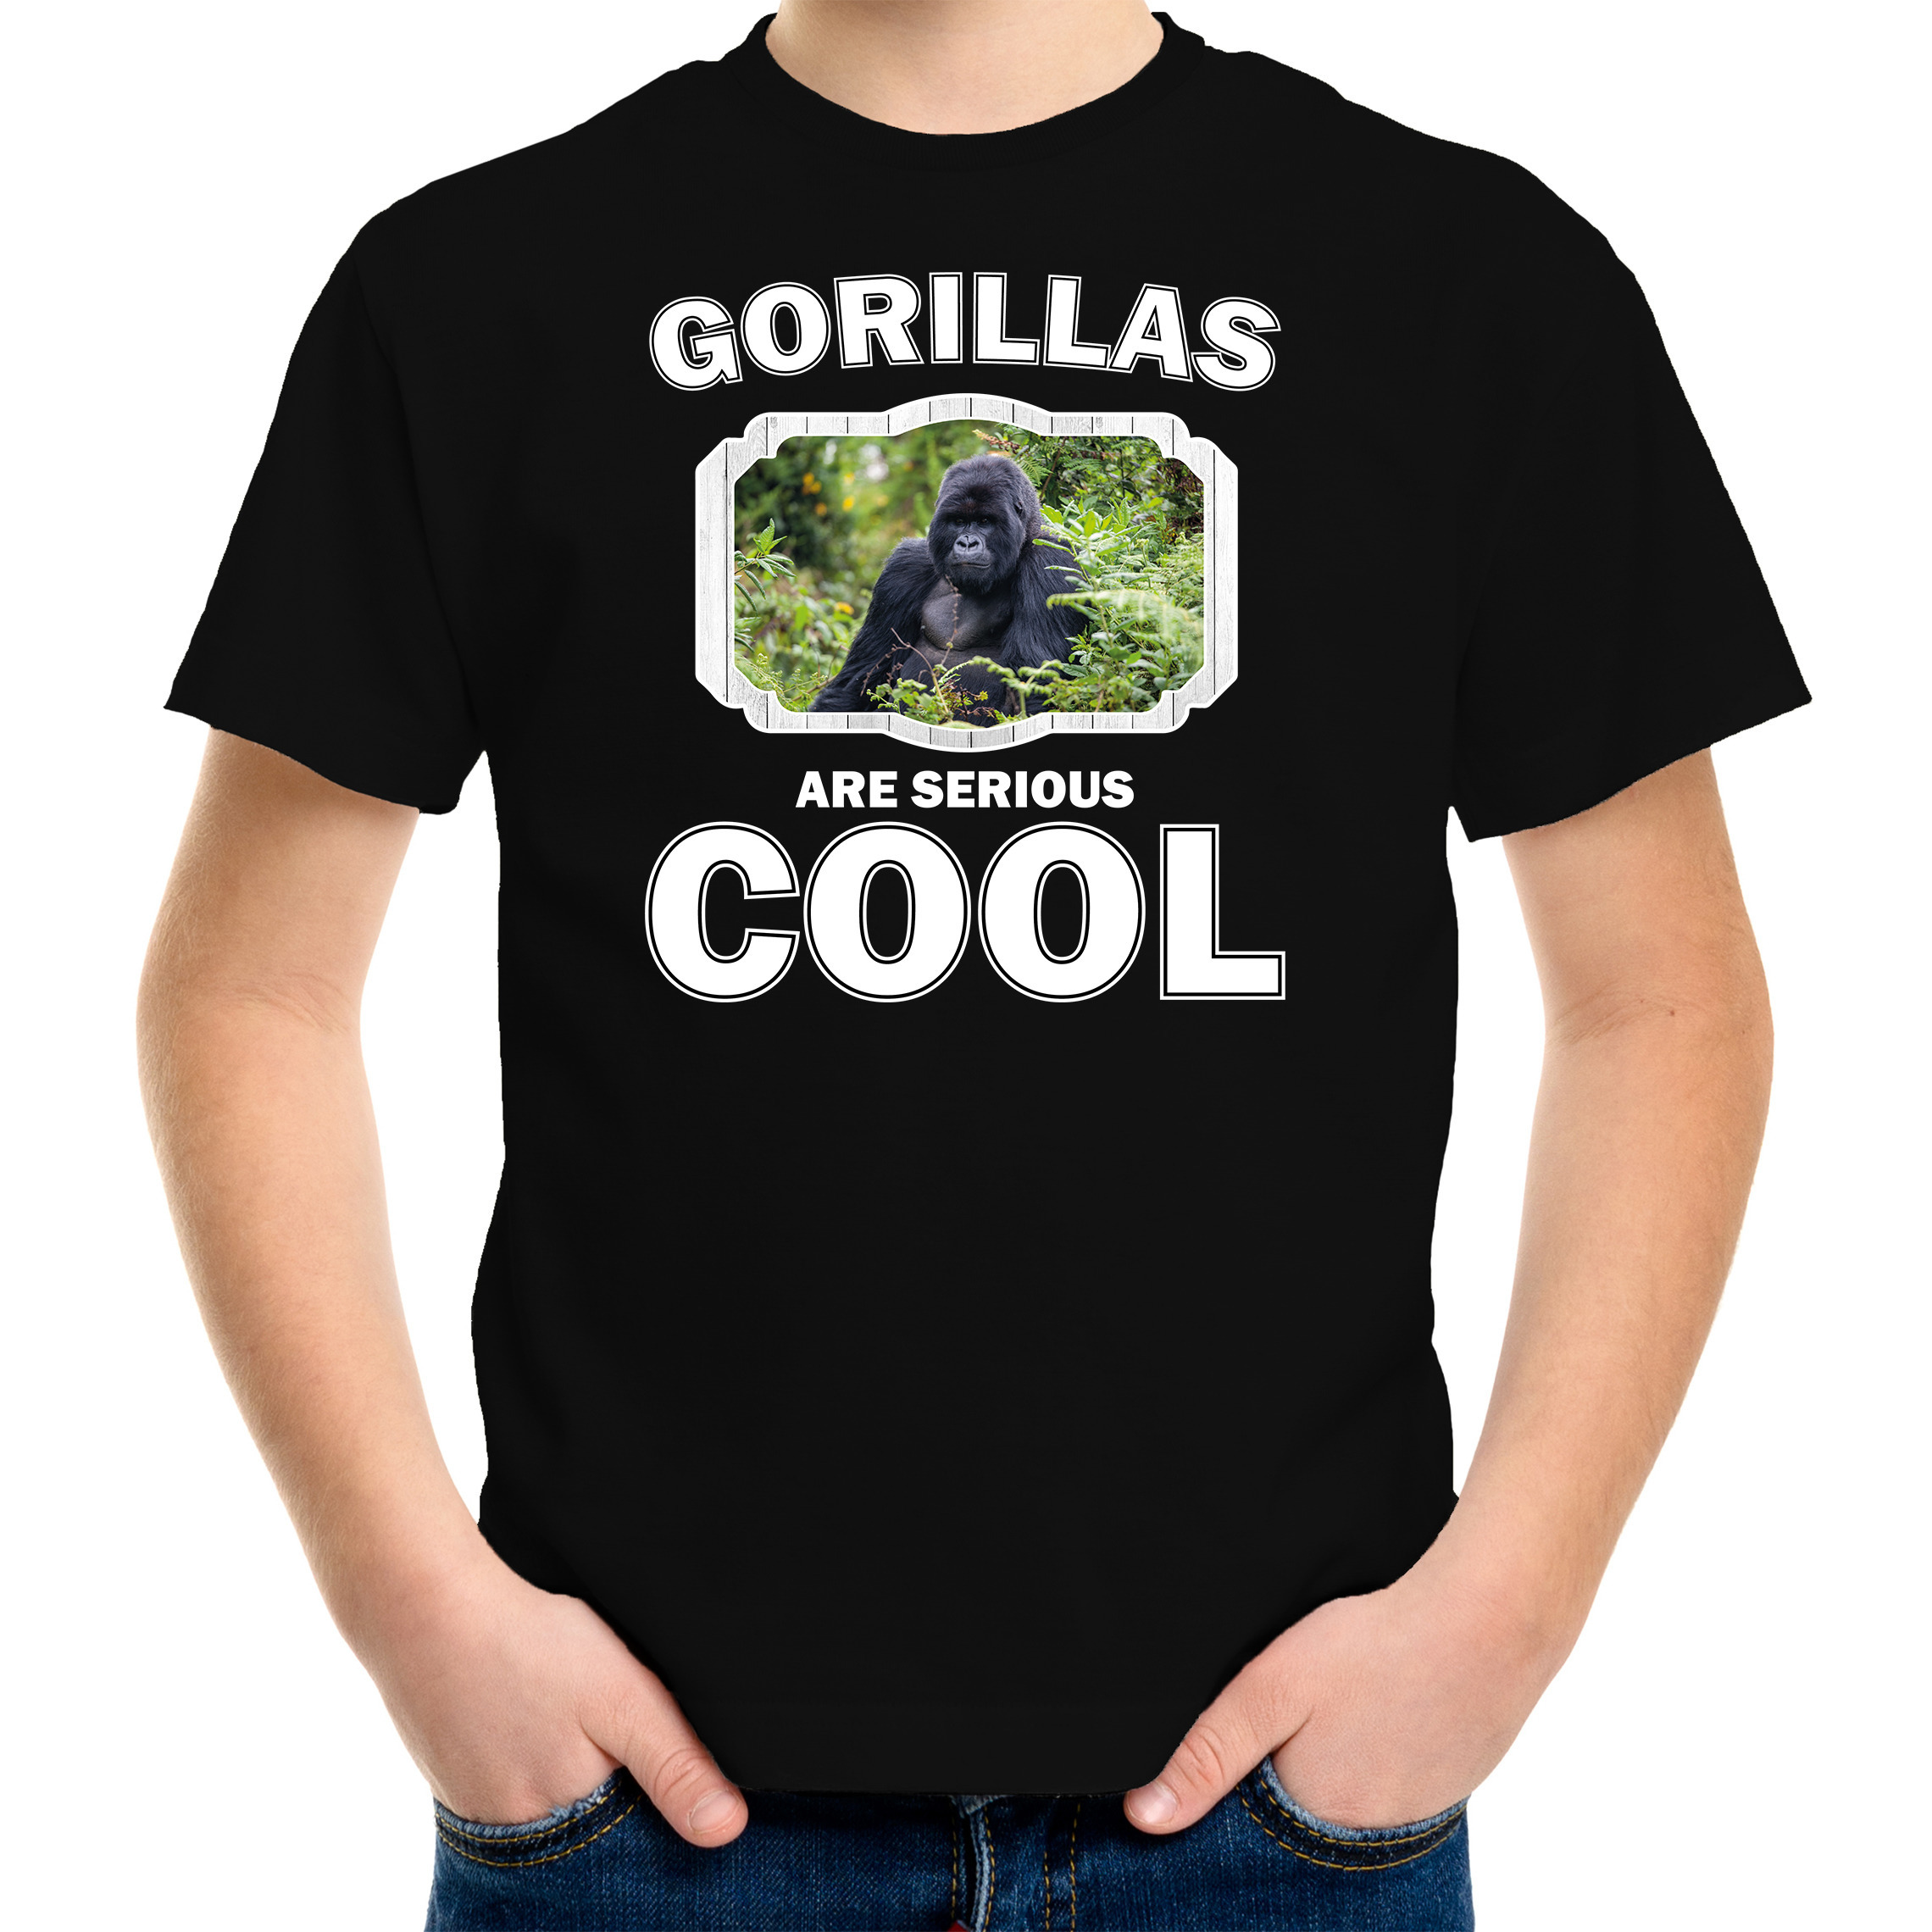 T-shirt gorillas are serious cool zwart kinderen - gorilla apen/ gorilla shirt